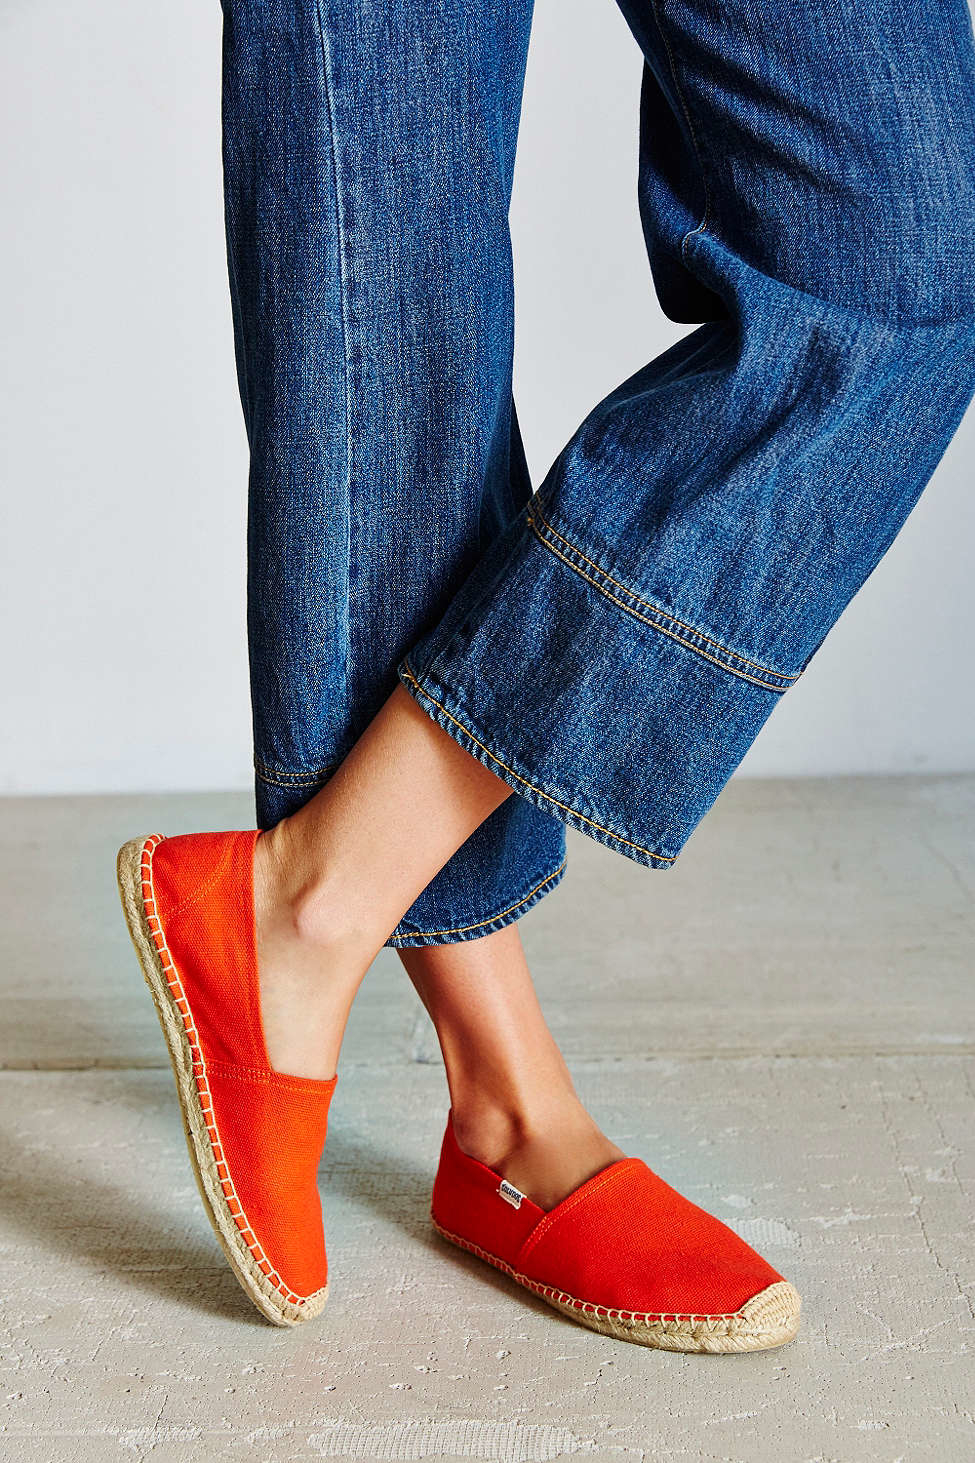 9acad724ac33 Soludos Dali Espadrille Slip-on Shoe in Red - Lyst